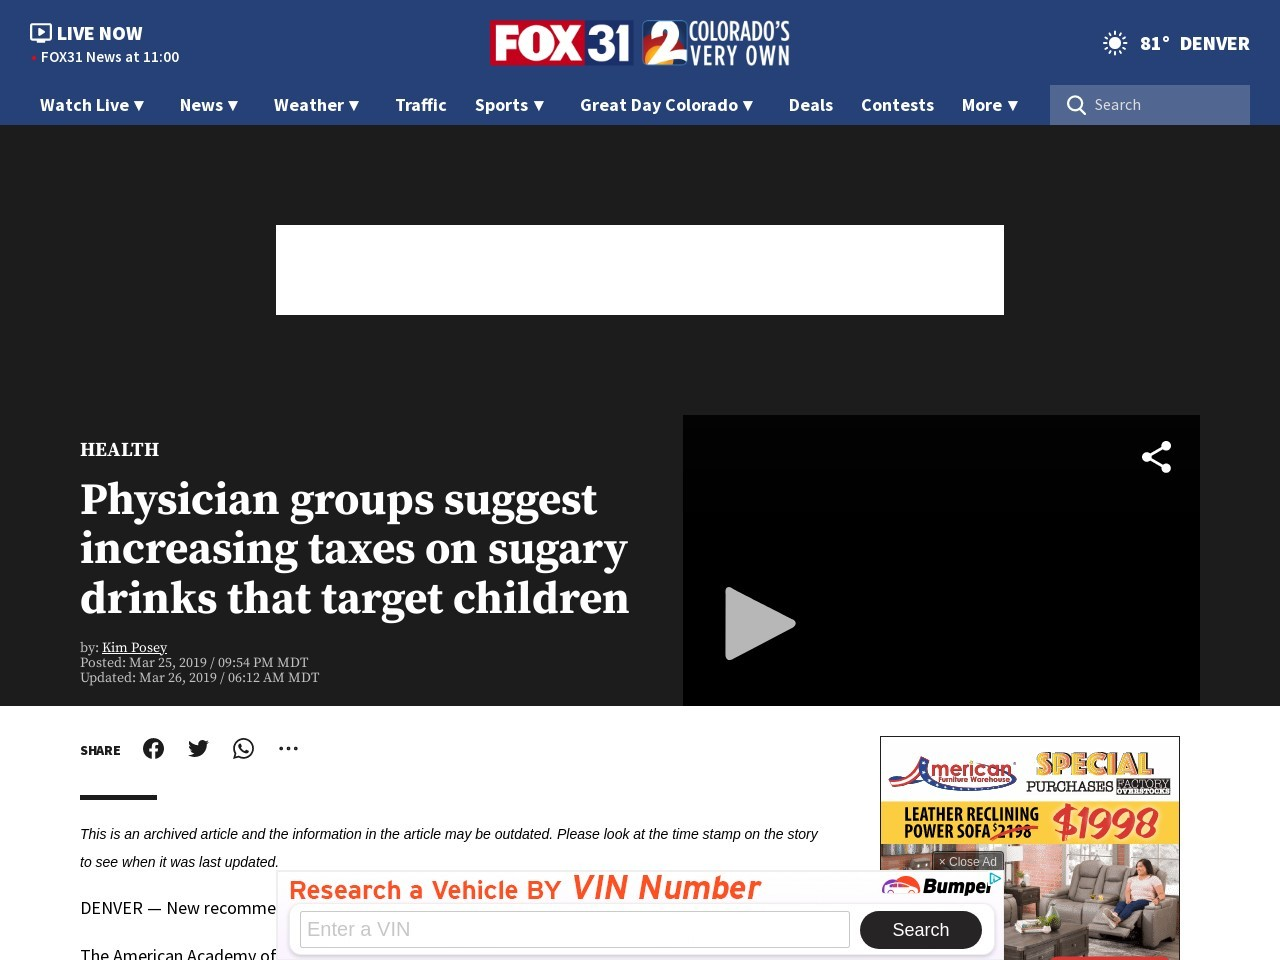 Physician groups suggest increasing taxes on sugary drinks that target children